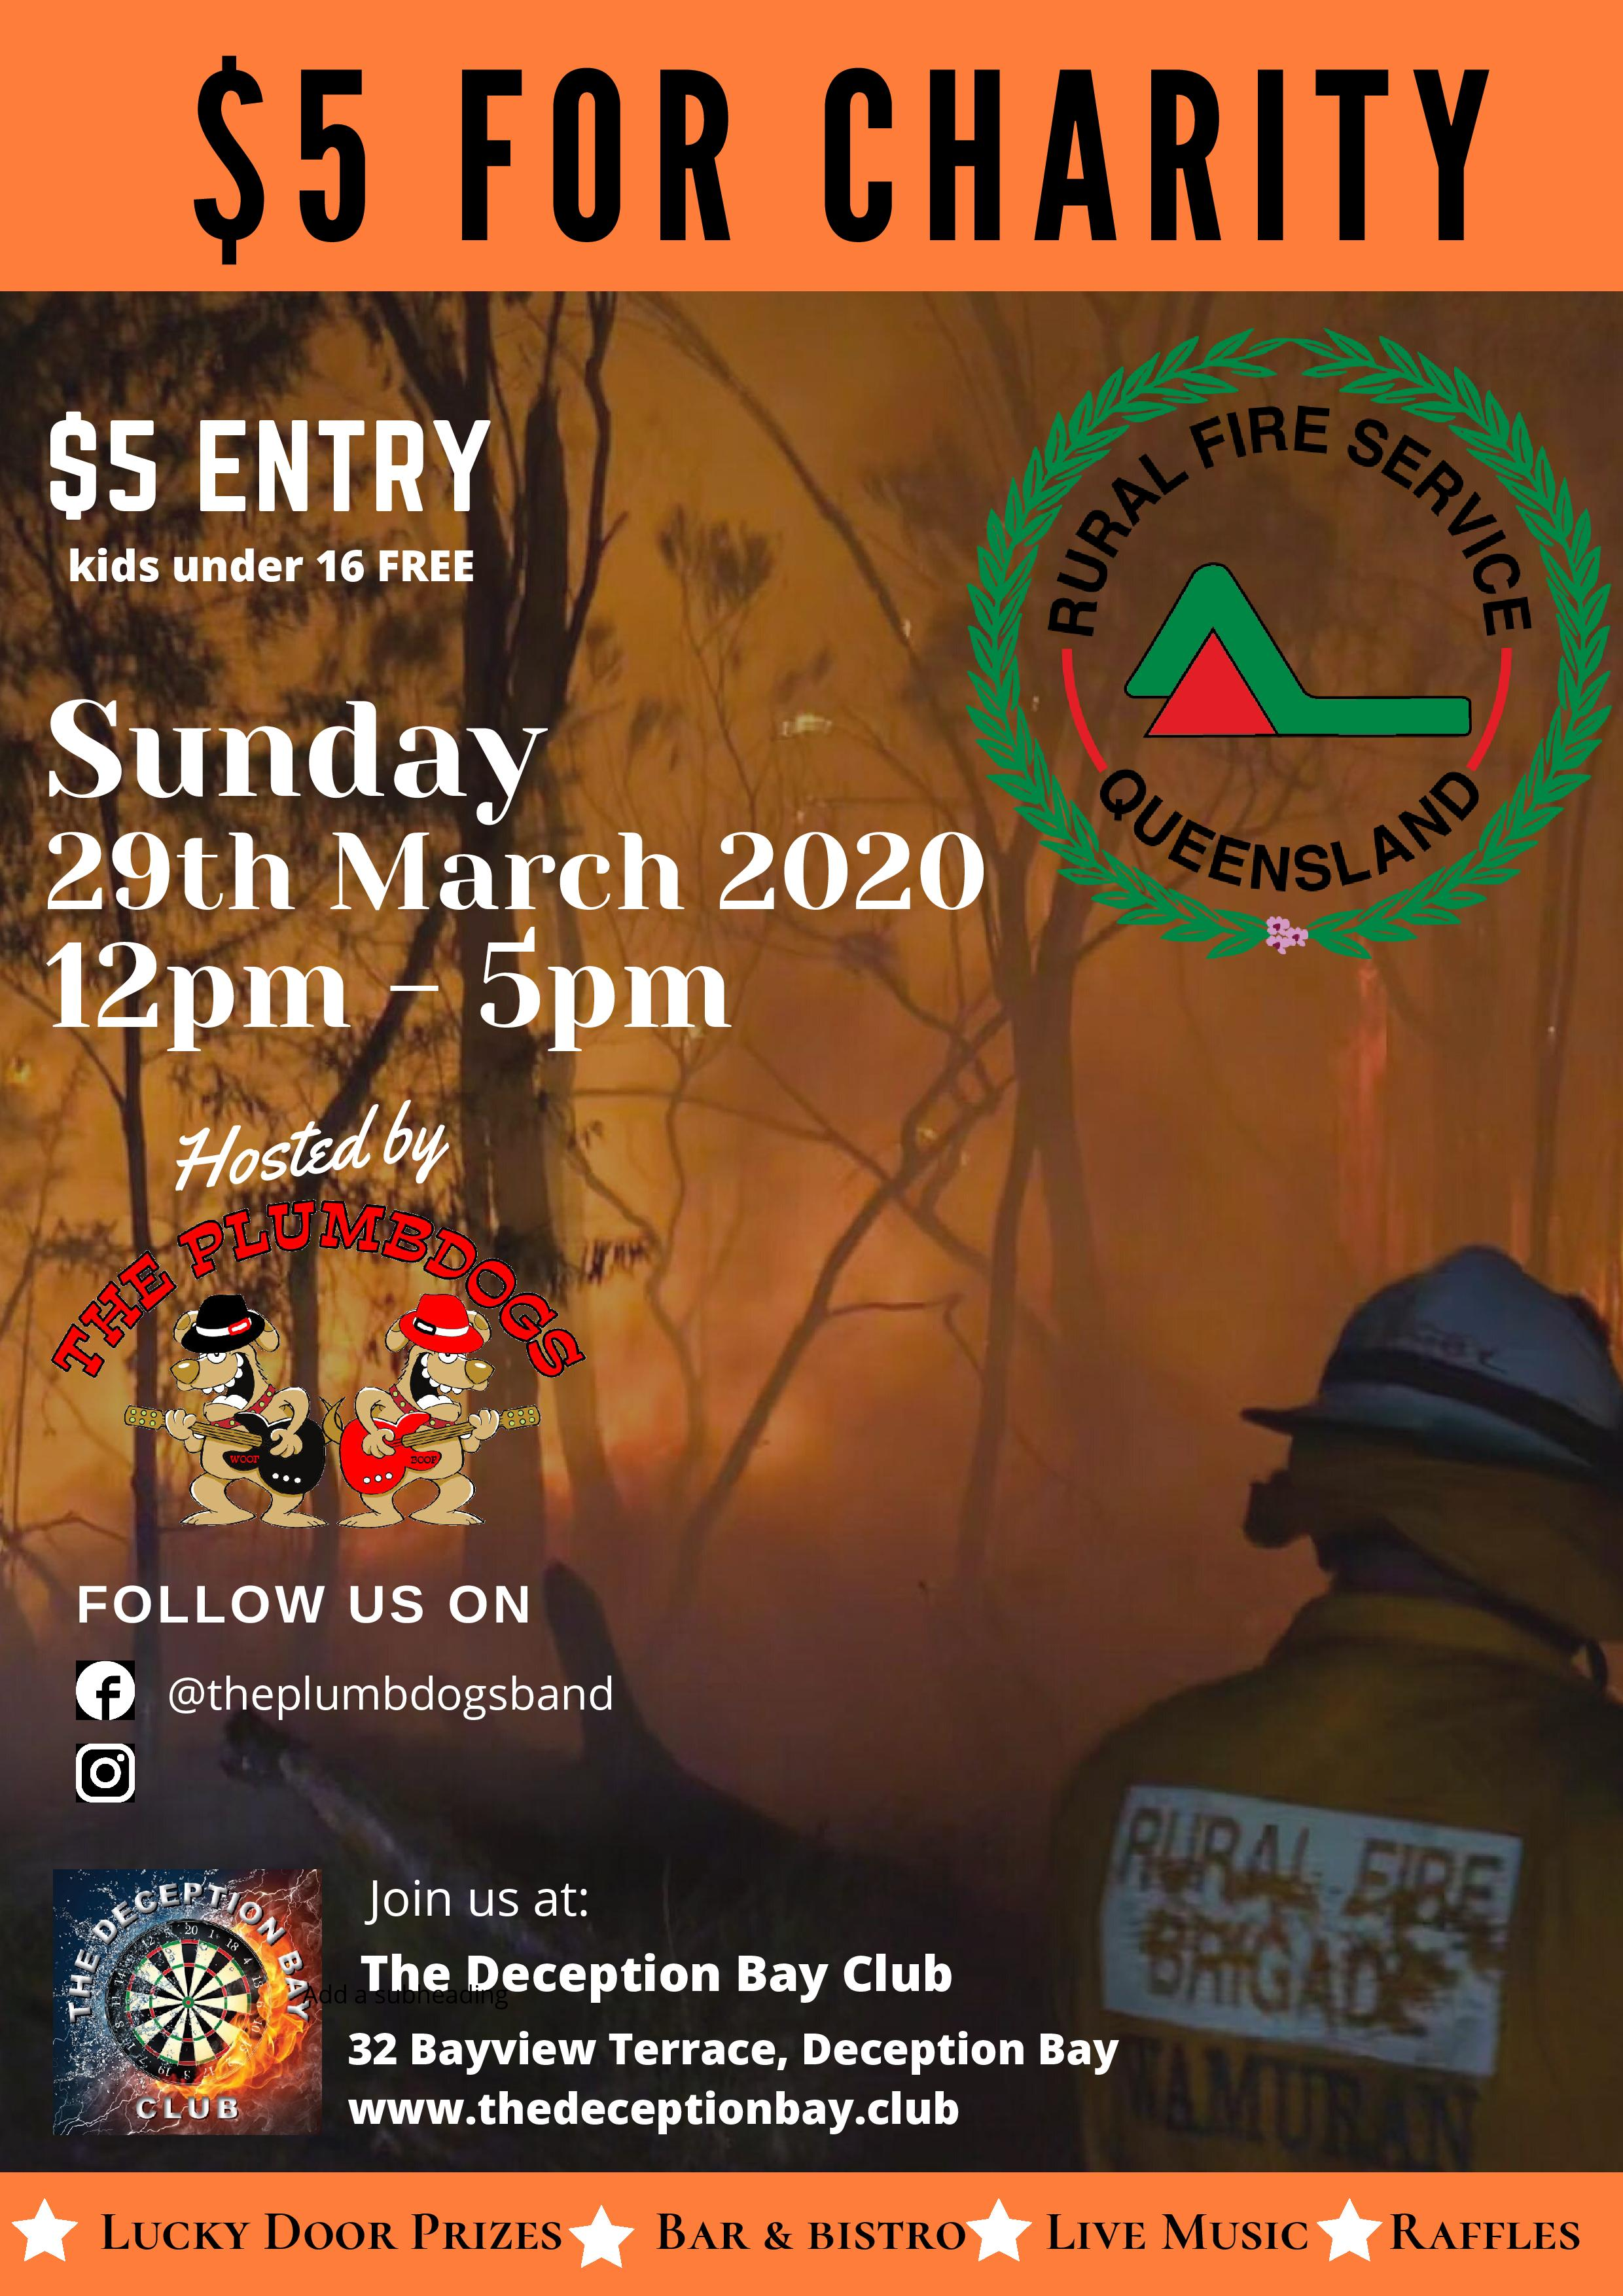 5 For Charity Rural Fire Service Queensland 29th March 2020